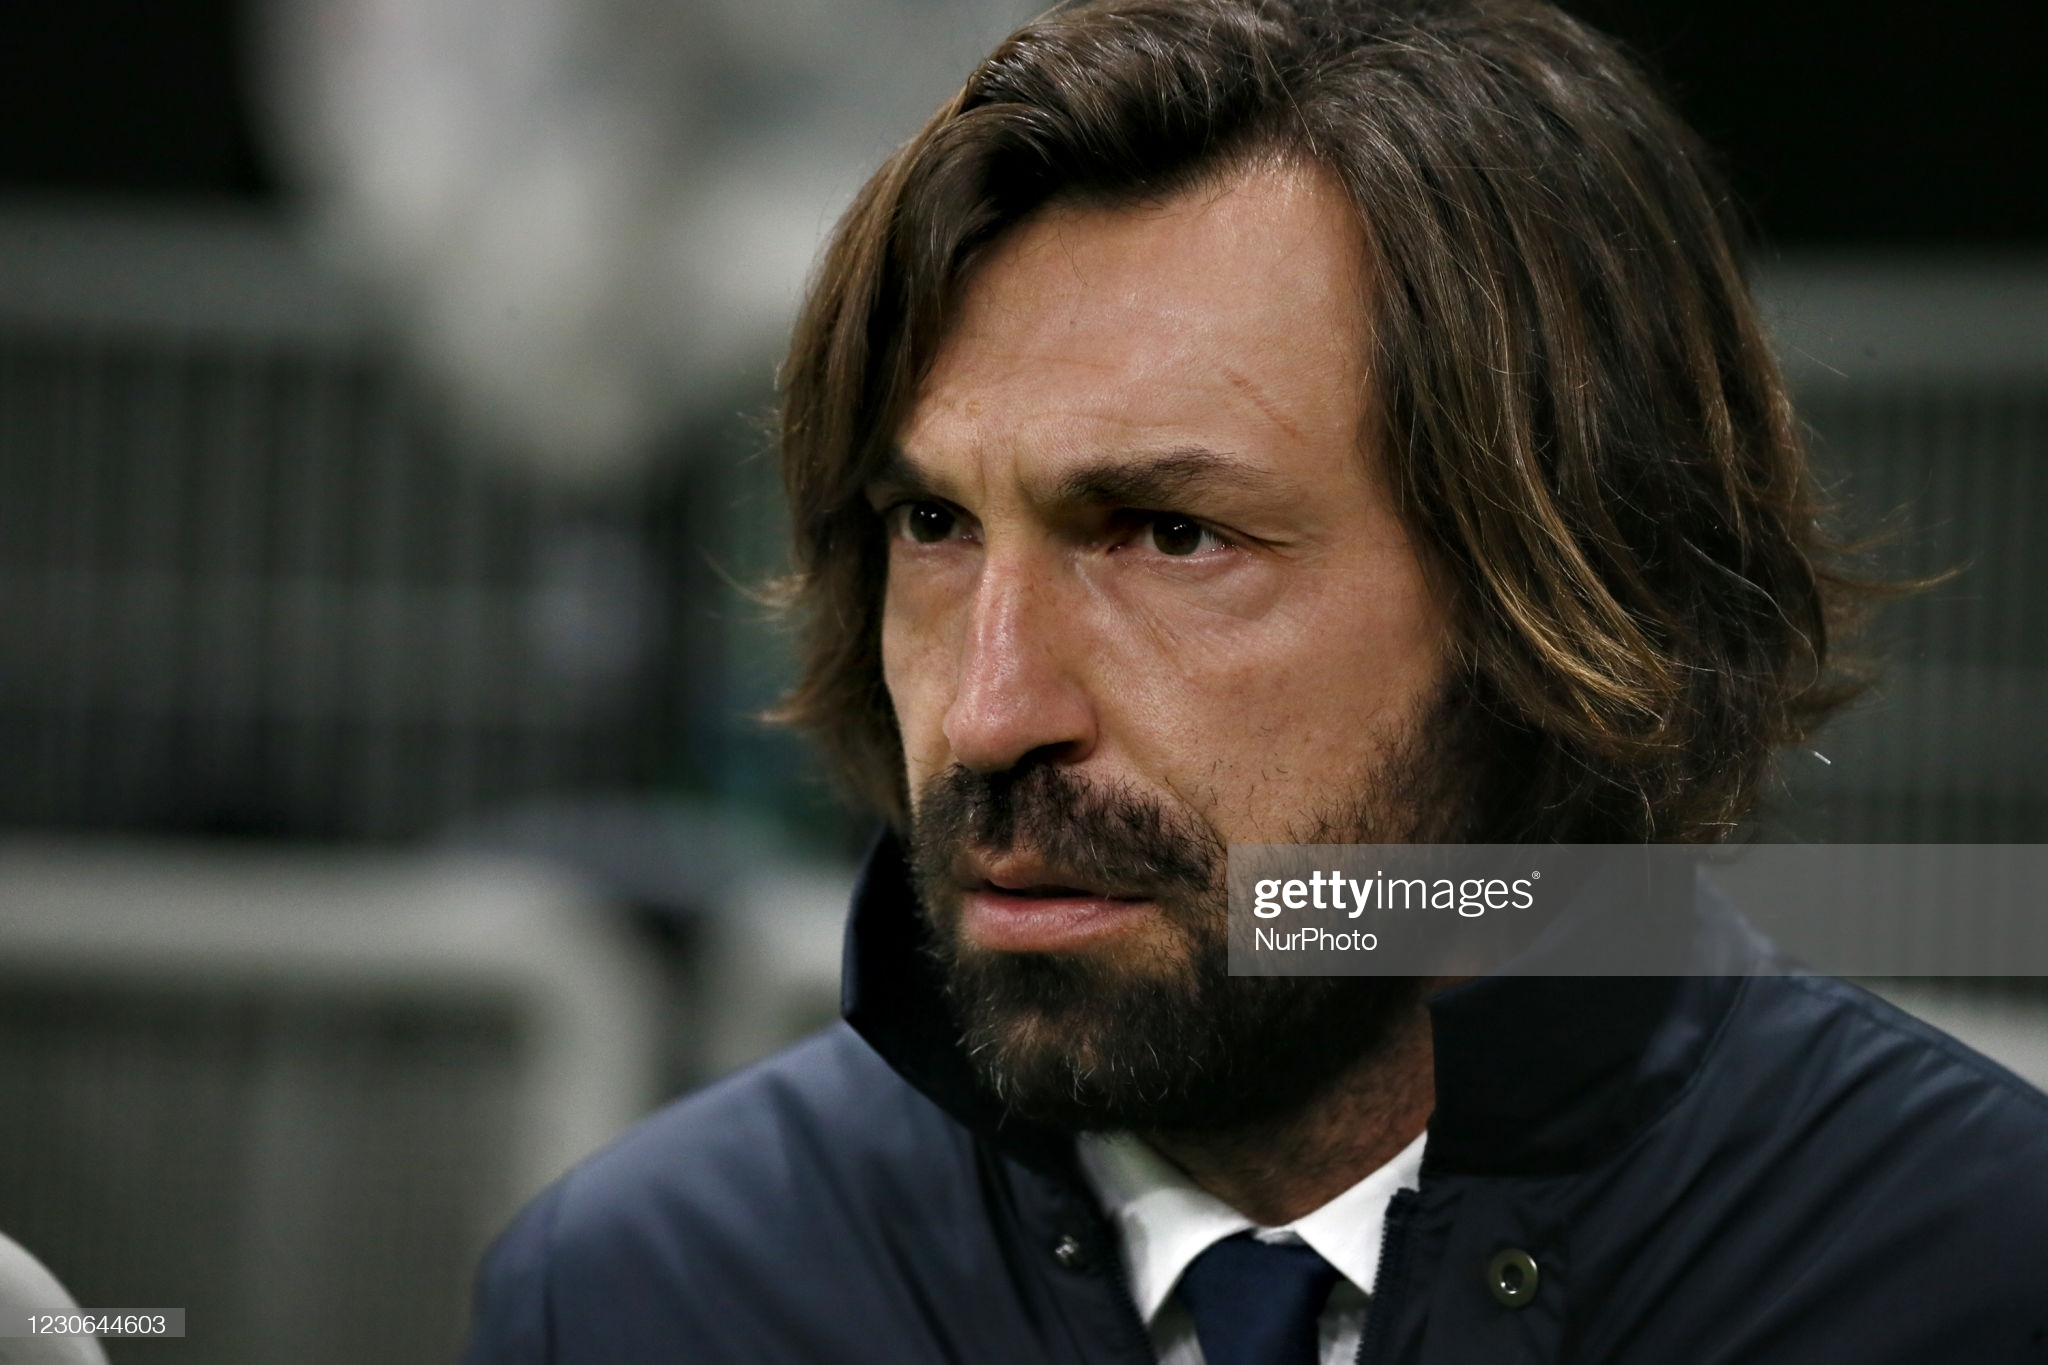 Pirlo - We should have played better 1 Sportelo